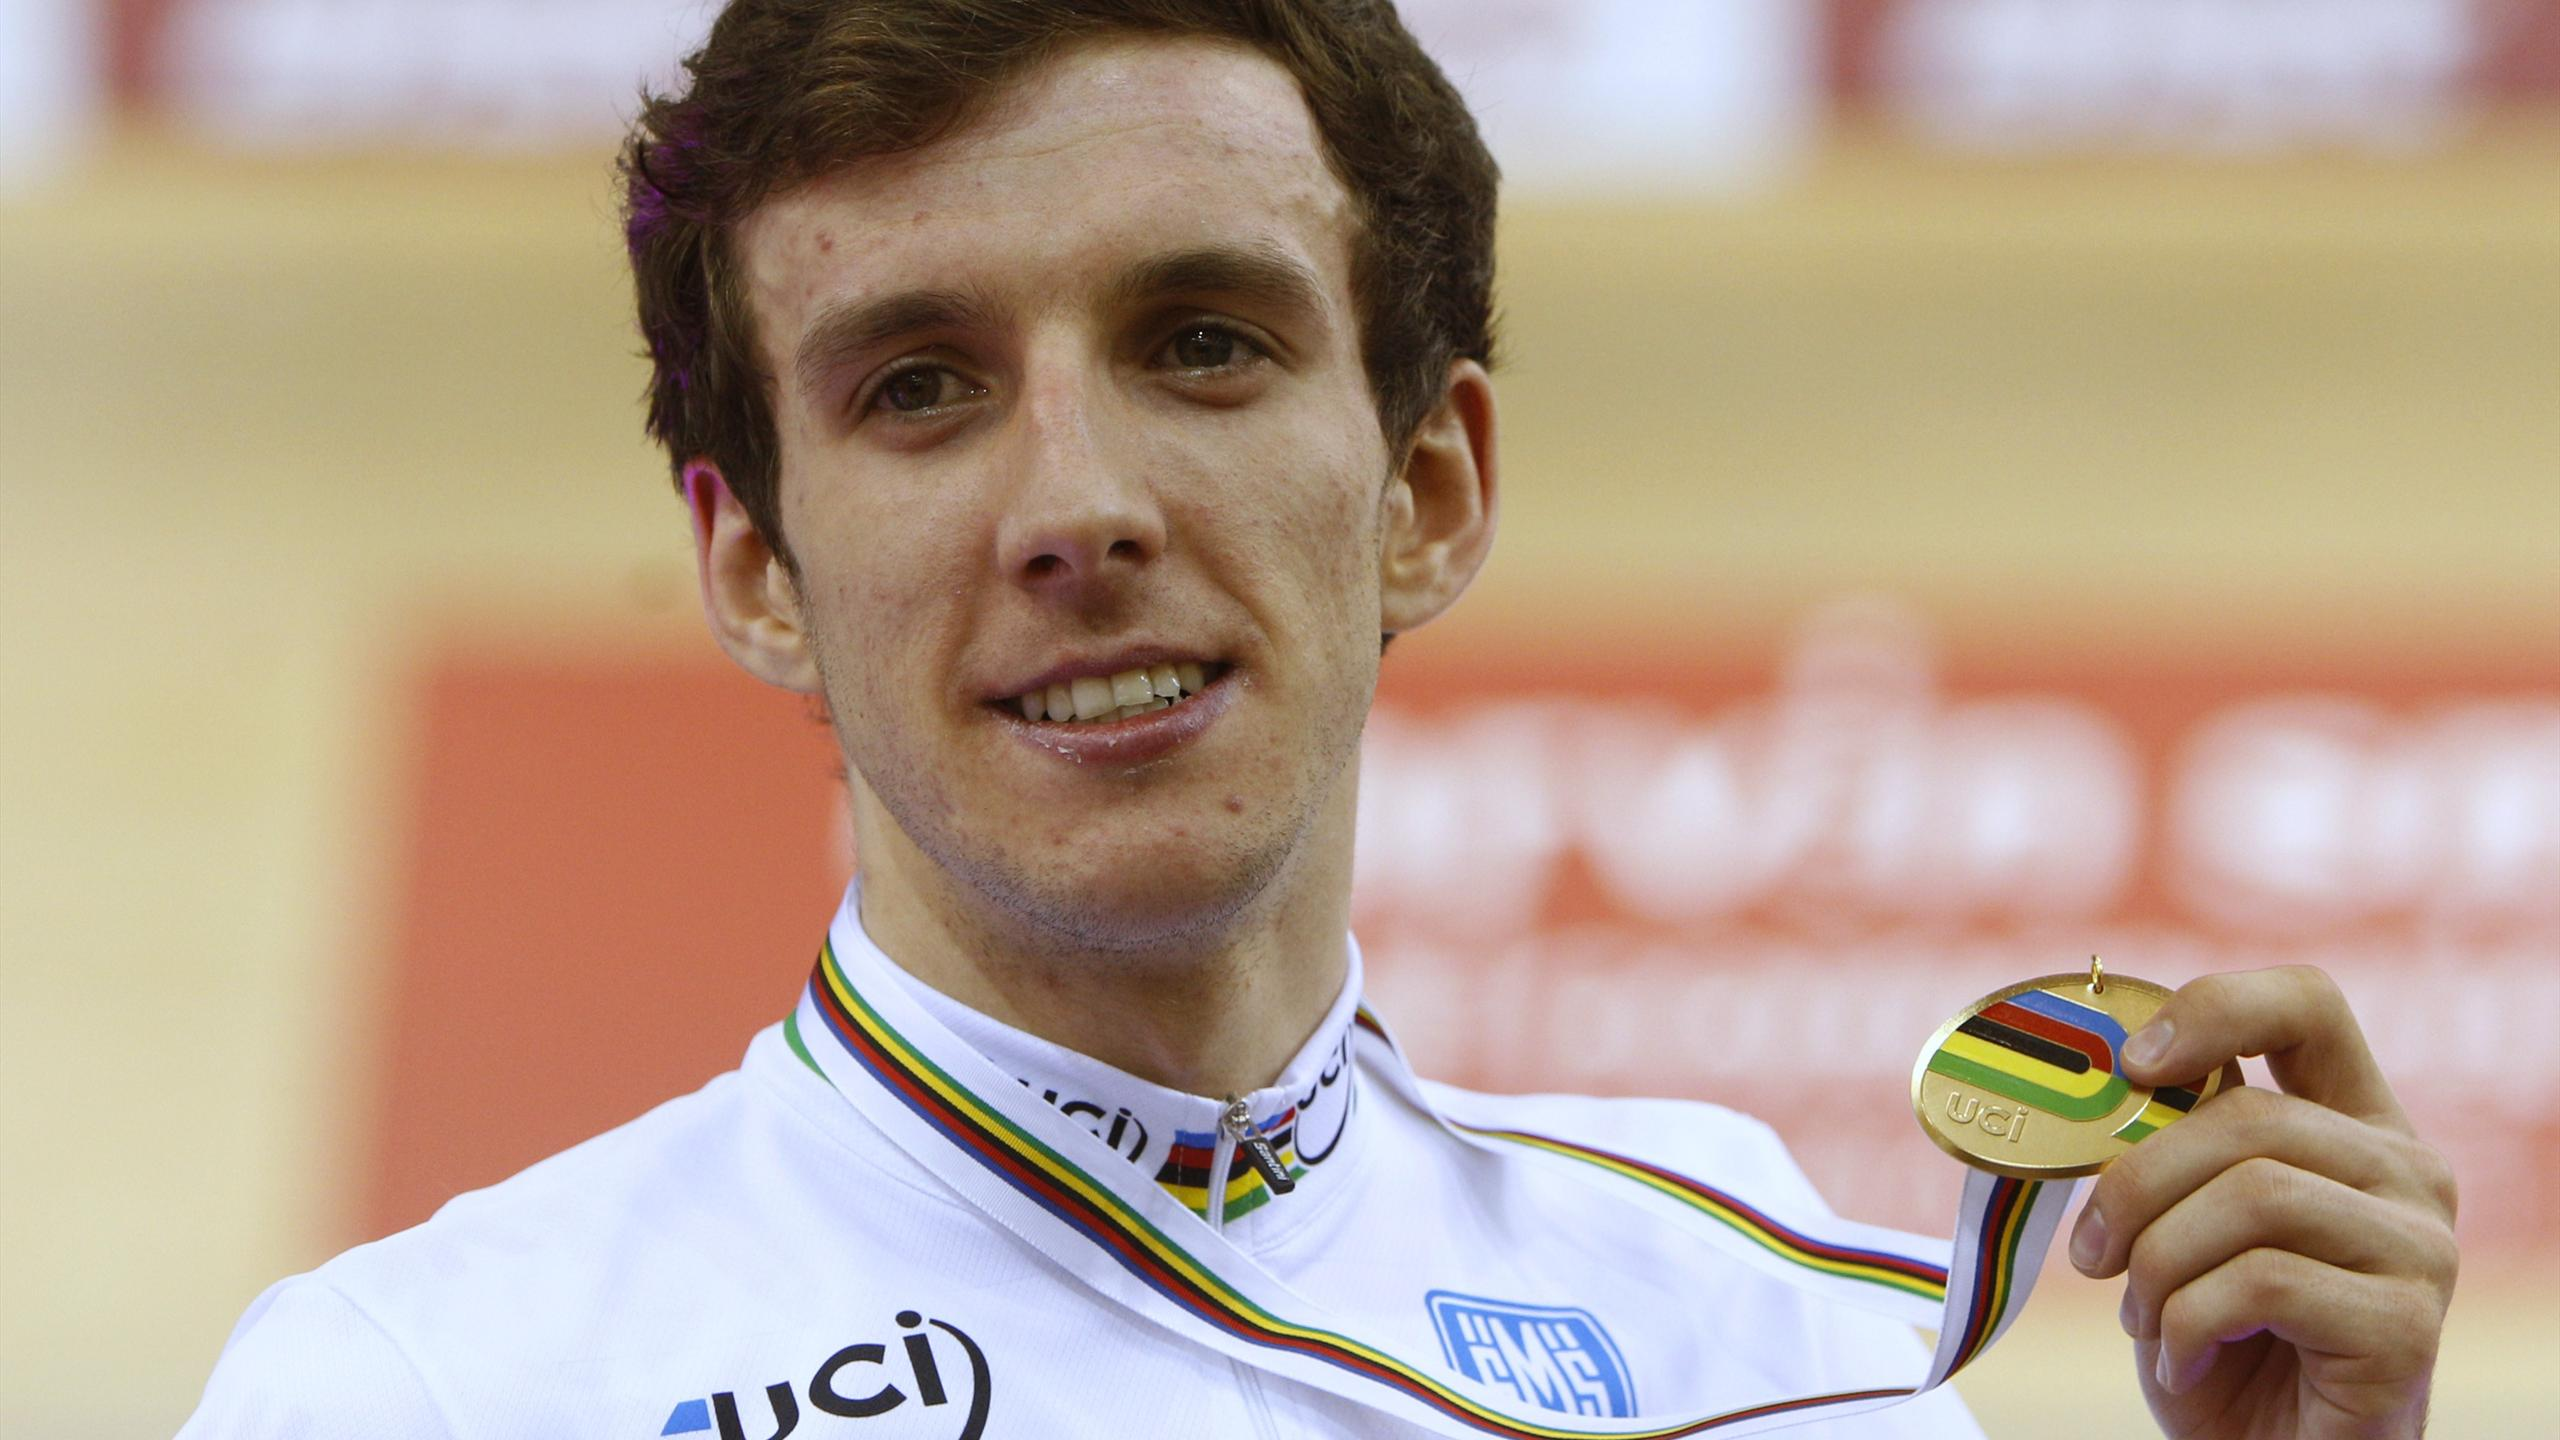 Britain's Simon Yates celebrates his gold medal during the men's points race at the UCI Track Cycling World Championships in Minsk